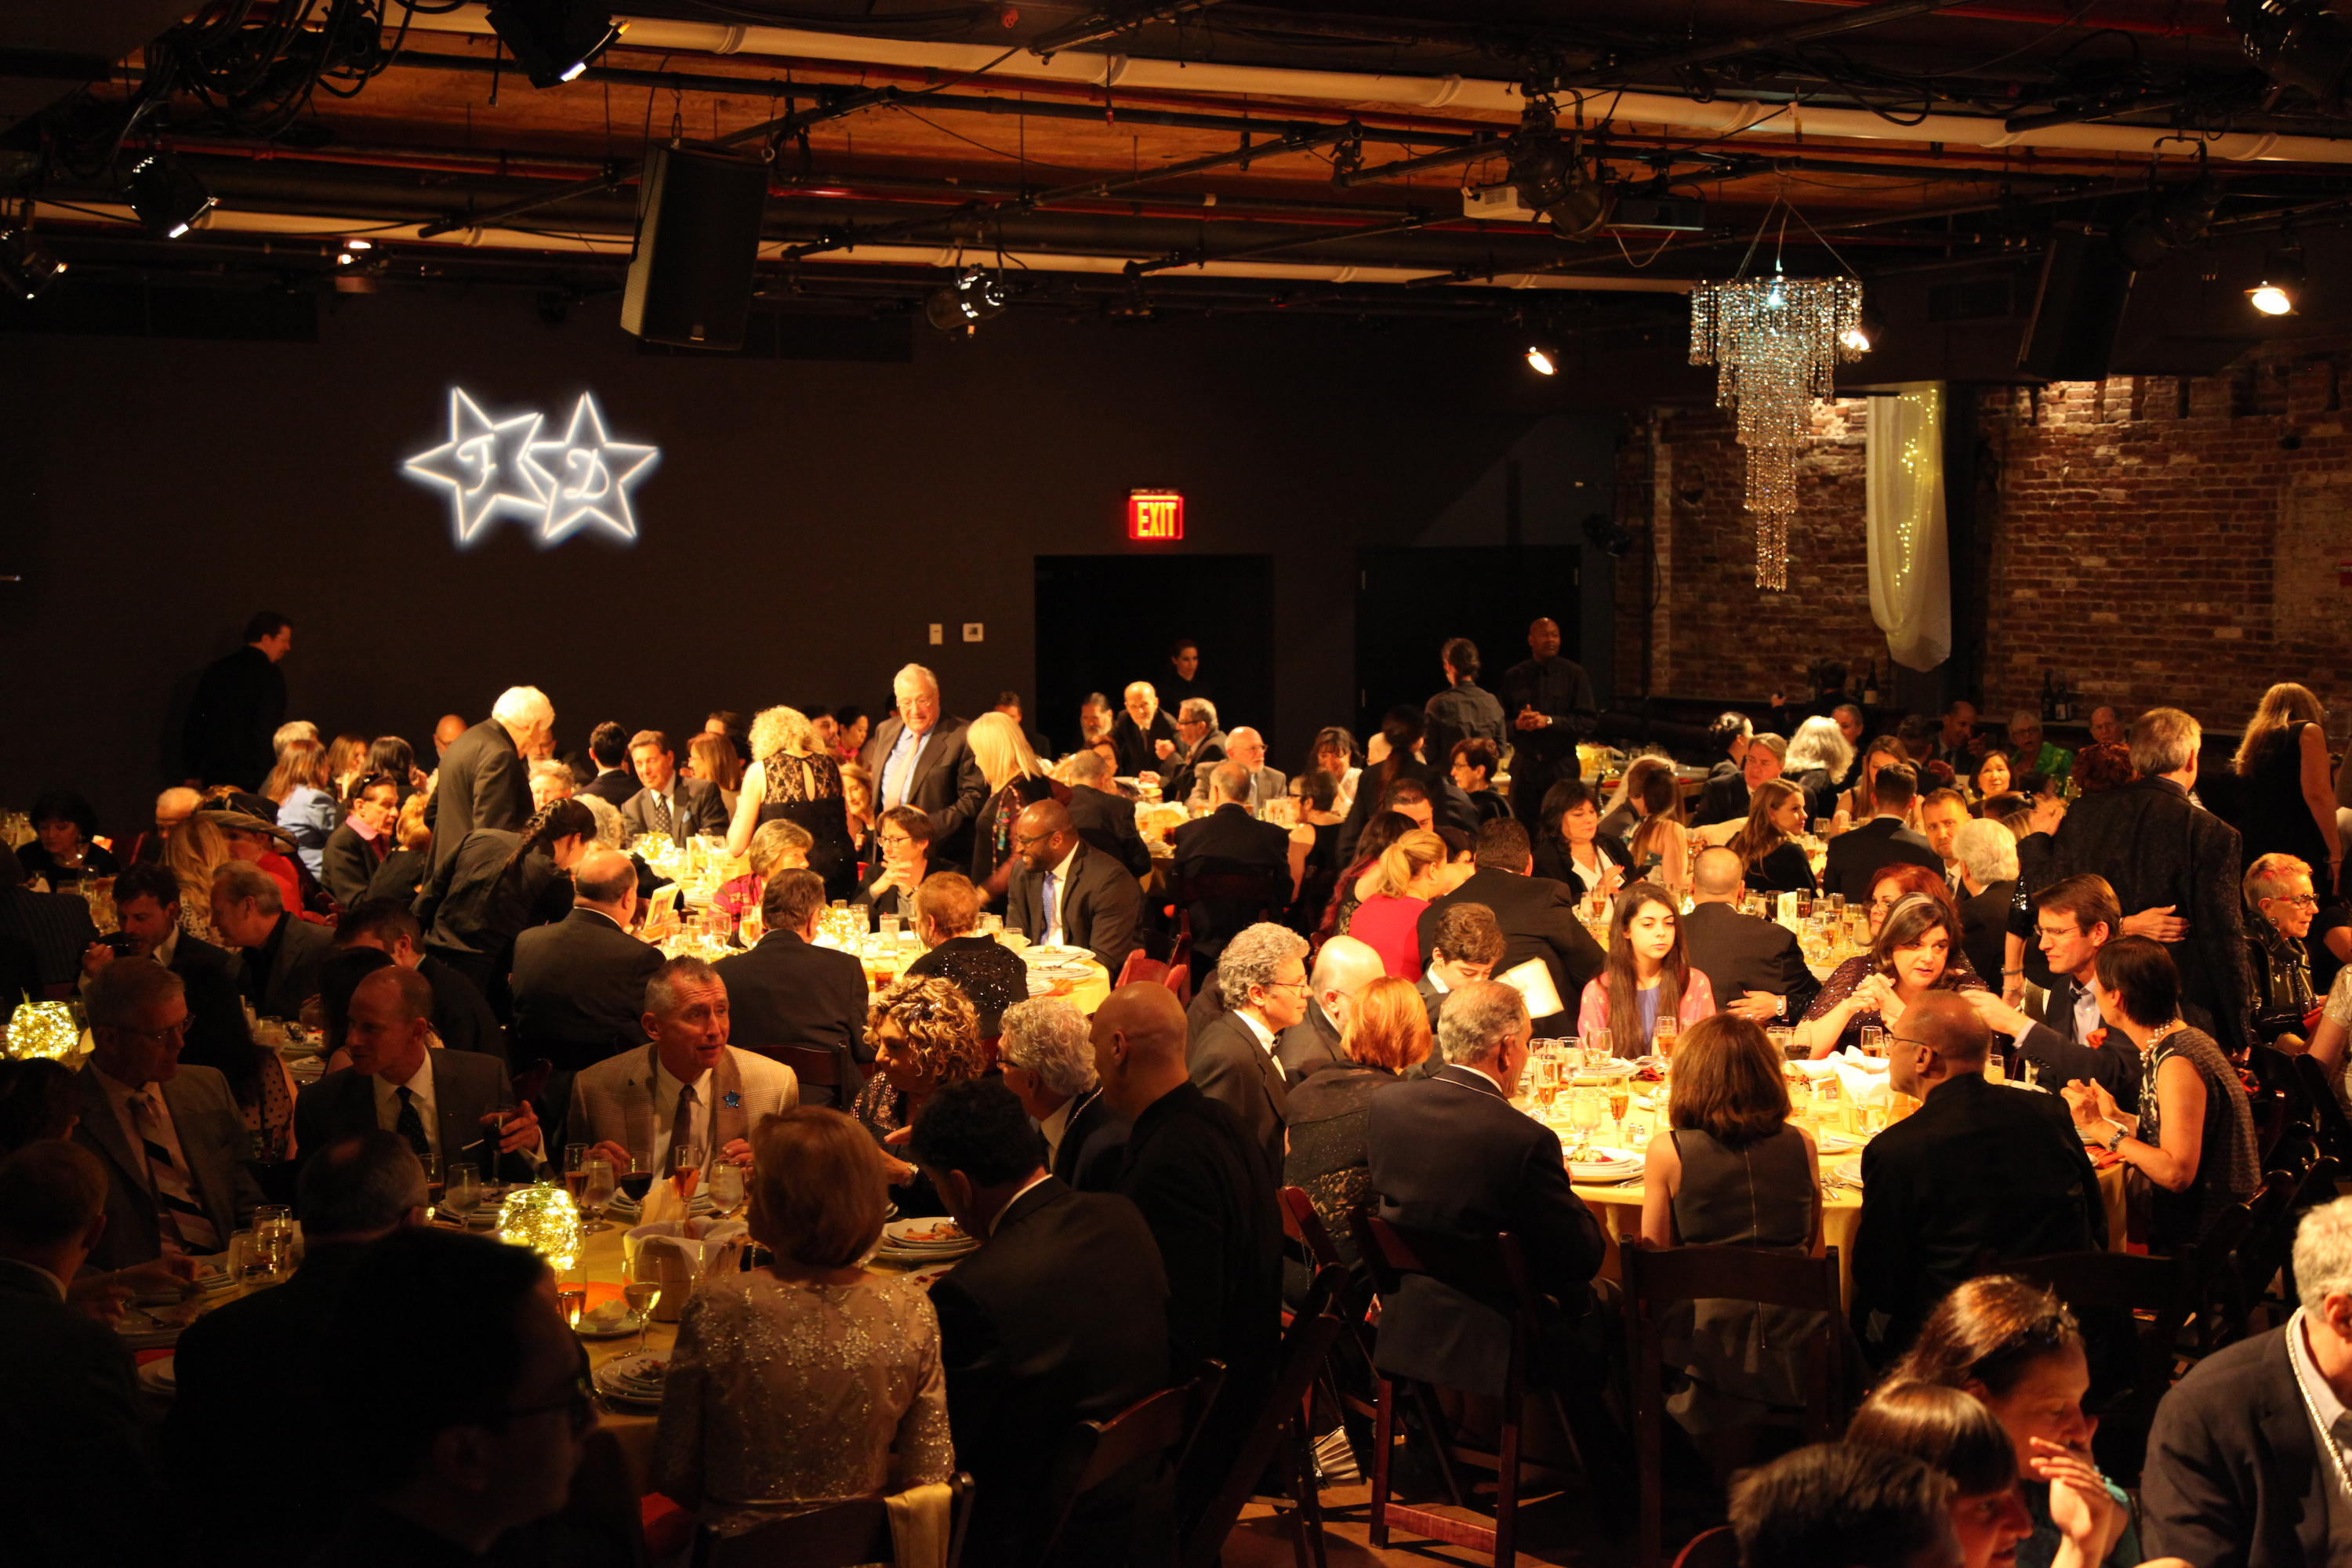 A venue space with one black wall and one brick wall. There are neon lights on one wall, and a chandelier is attached to the ceiling. Several round tables and chairs are set up throughout the room, with formally-dressed people sitting and standing.